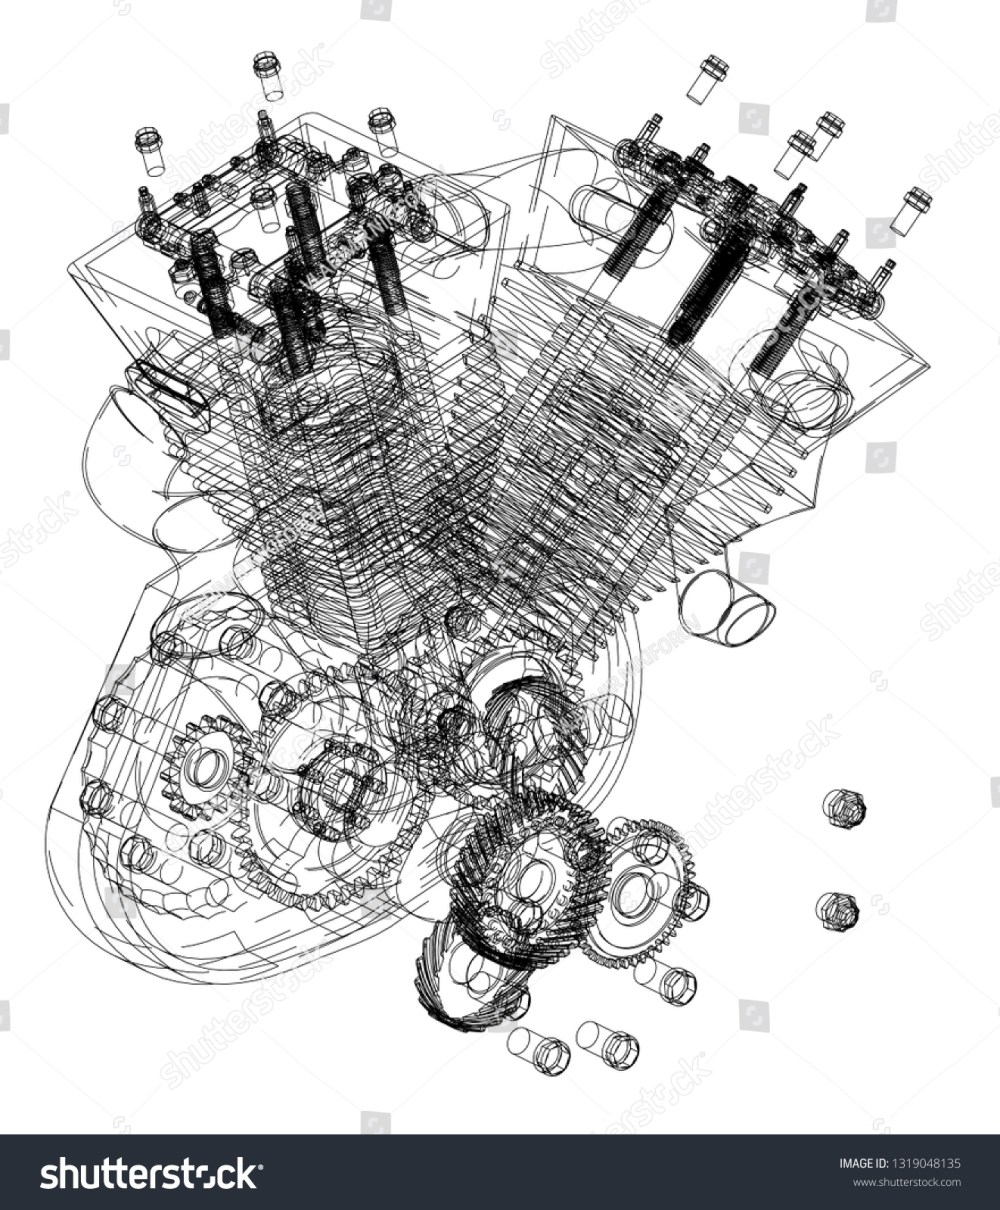 medium resolution of motorcycle engine on a white background drawing